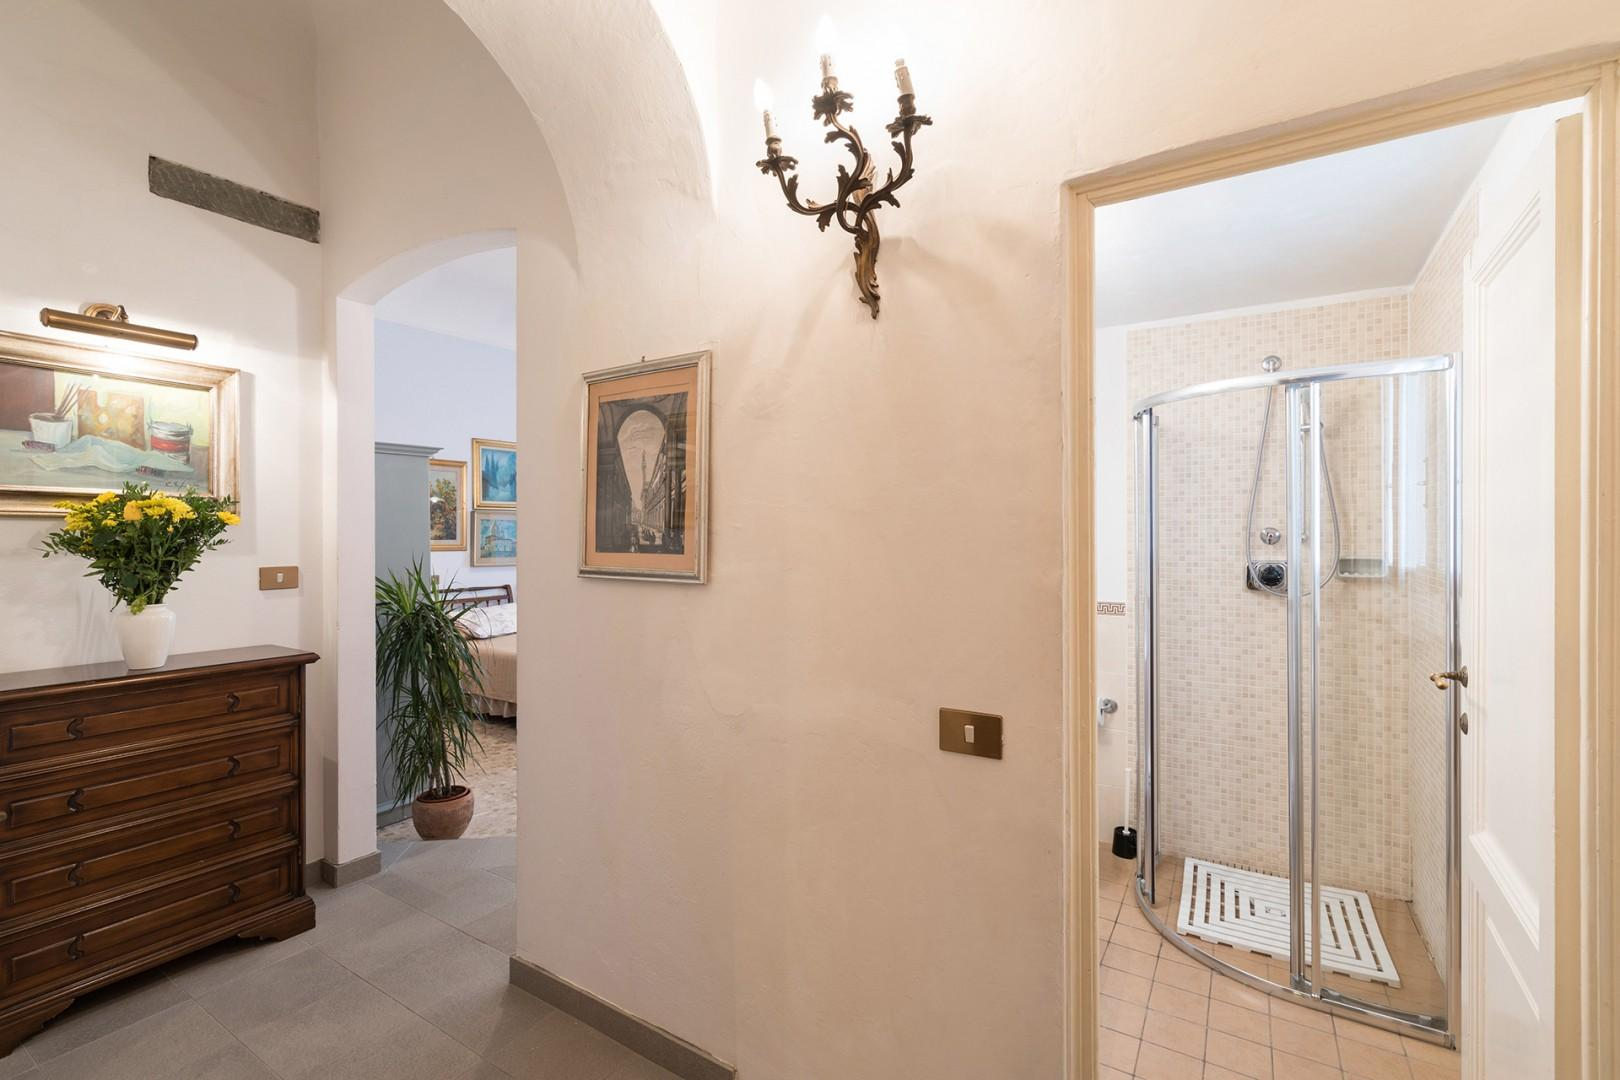 Entrance to full bathroom off the dining area.